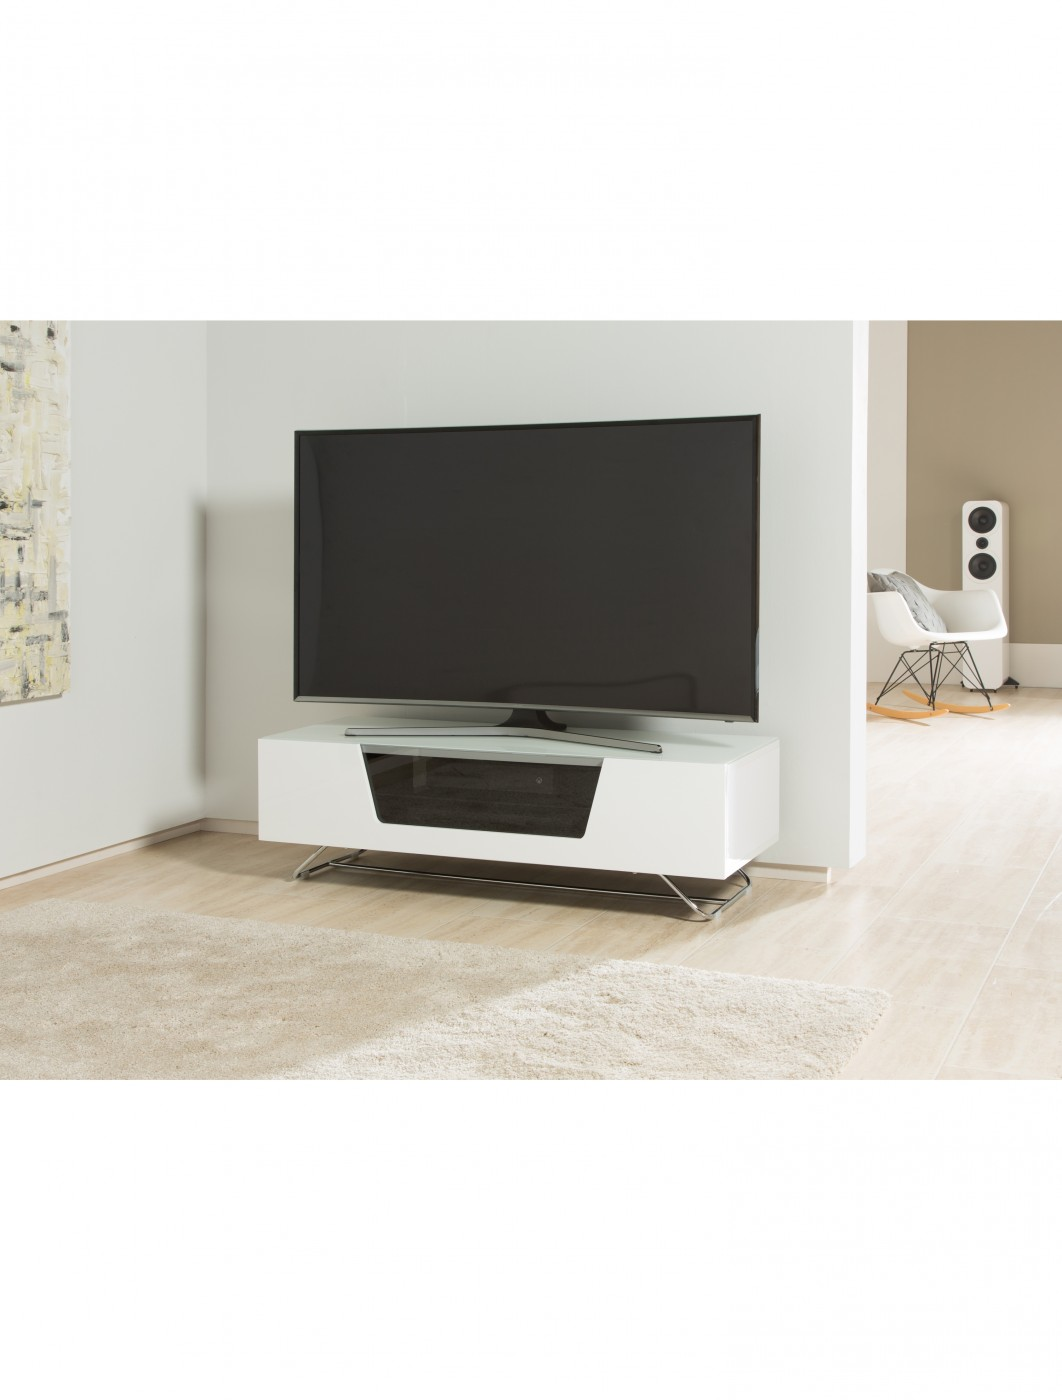 White Tv Stand Alphason Chromium Tv Stand Cro2 1200cb Wht 121 Tv Mounts